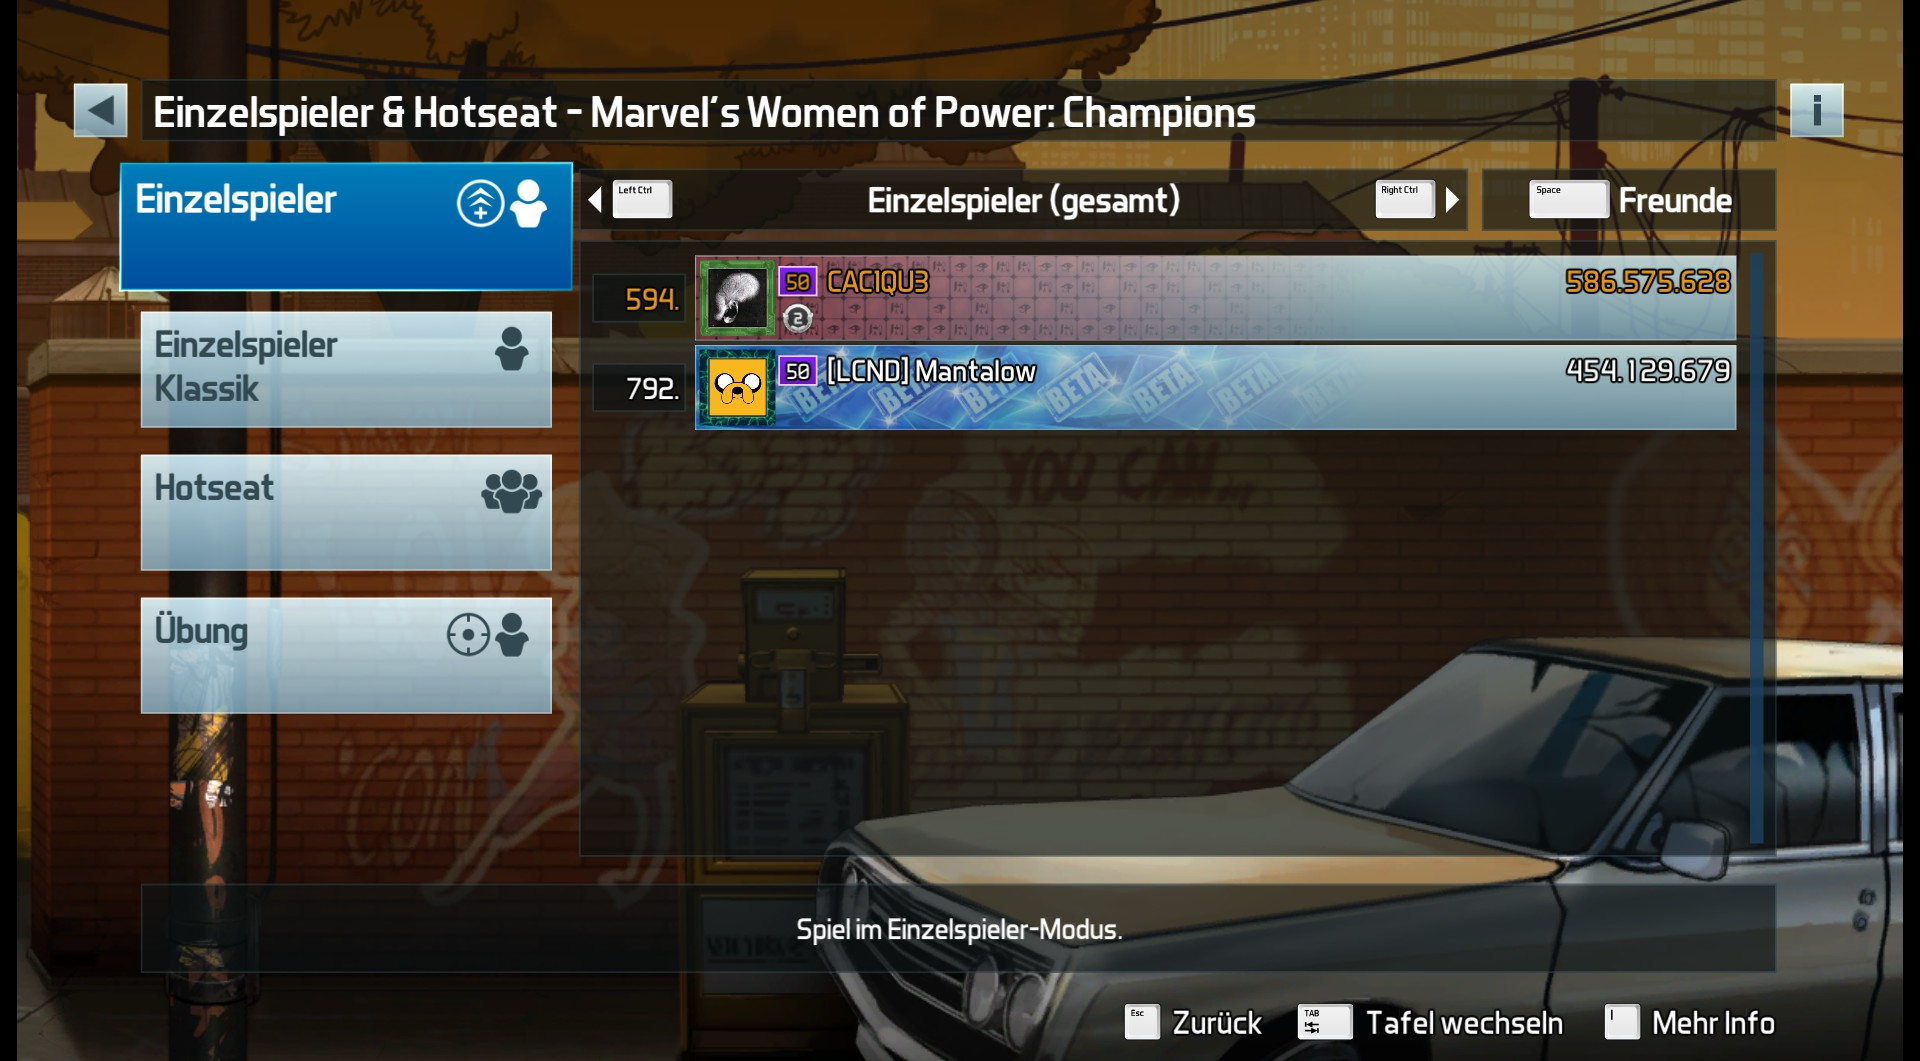 CAC1QU3: Pinball FX3: Marvel's Women of Power: Champions (PC) 586,575,628 points on 2019-04-11 22:07:45